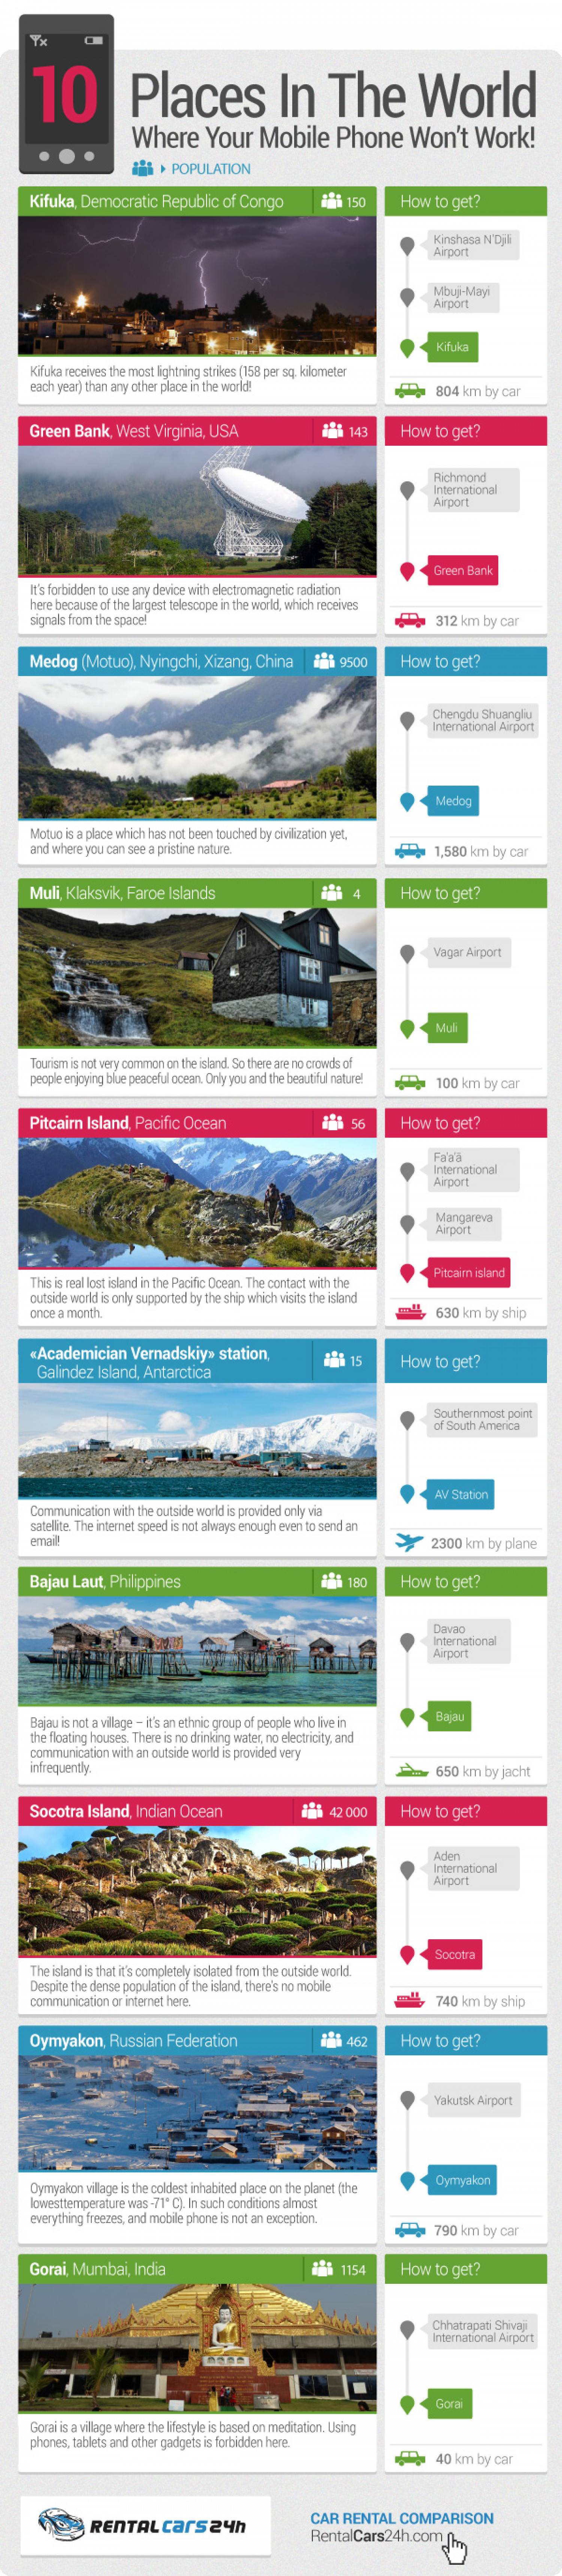 10 Places in the World Where Your Mobile Phone Won't Work! Infographic